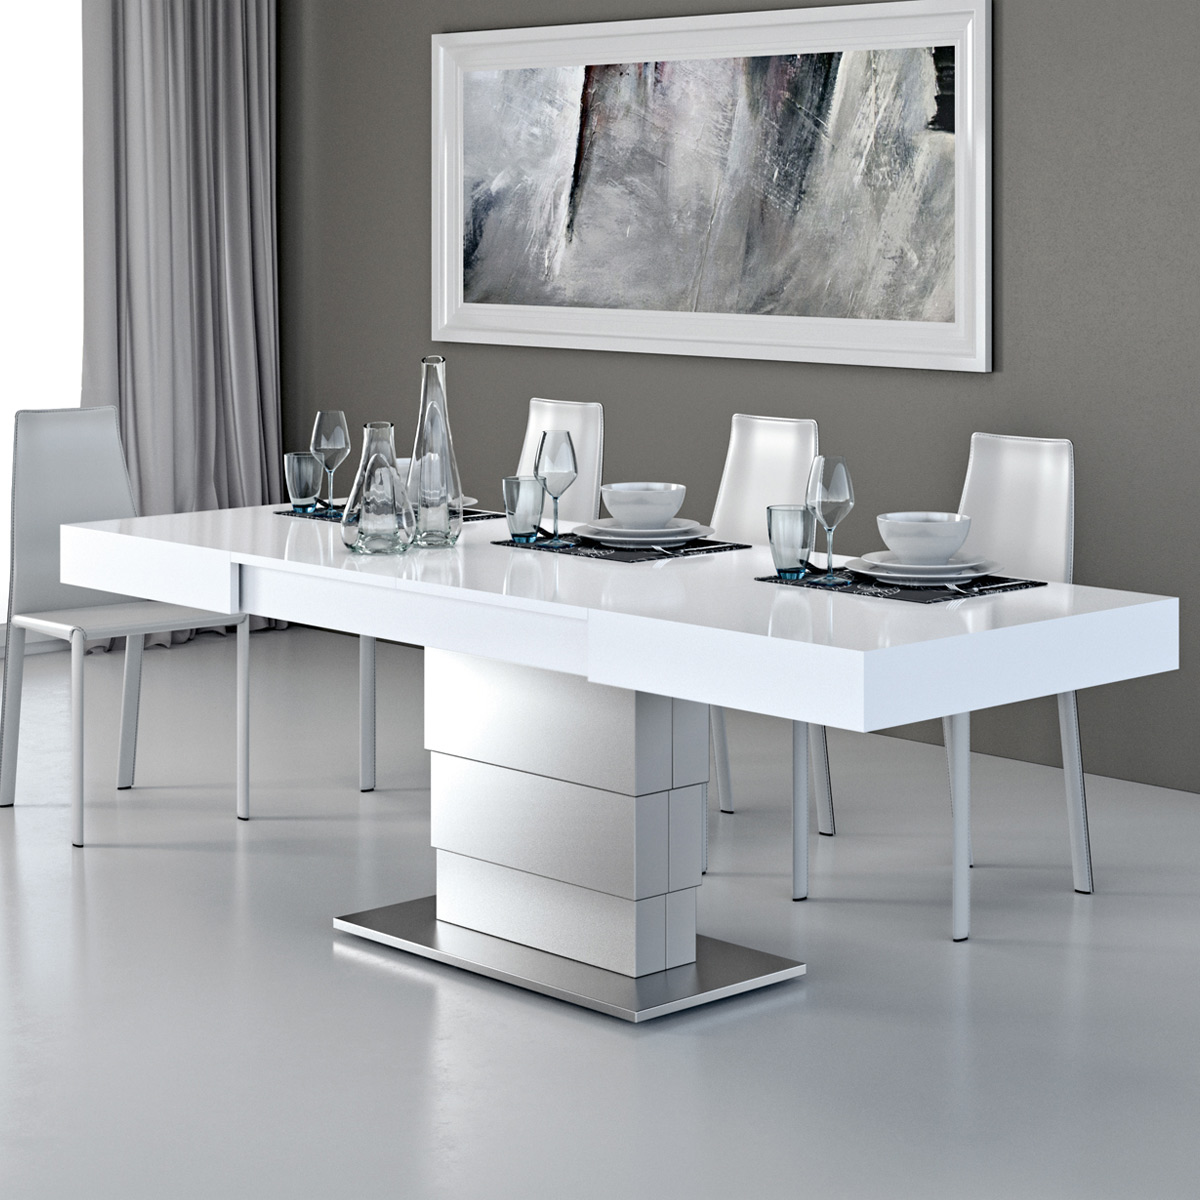 Table basse modulable design ARES FOLD inox 80x110/220cm H. 41/76 par  Zendart Sélection